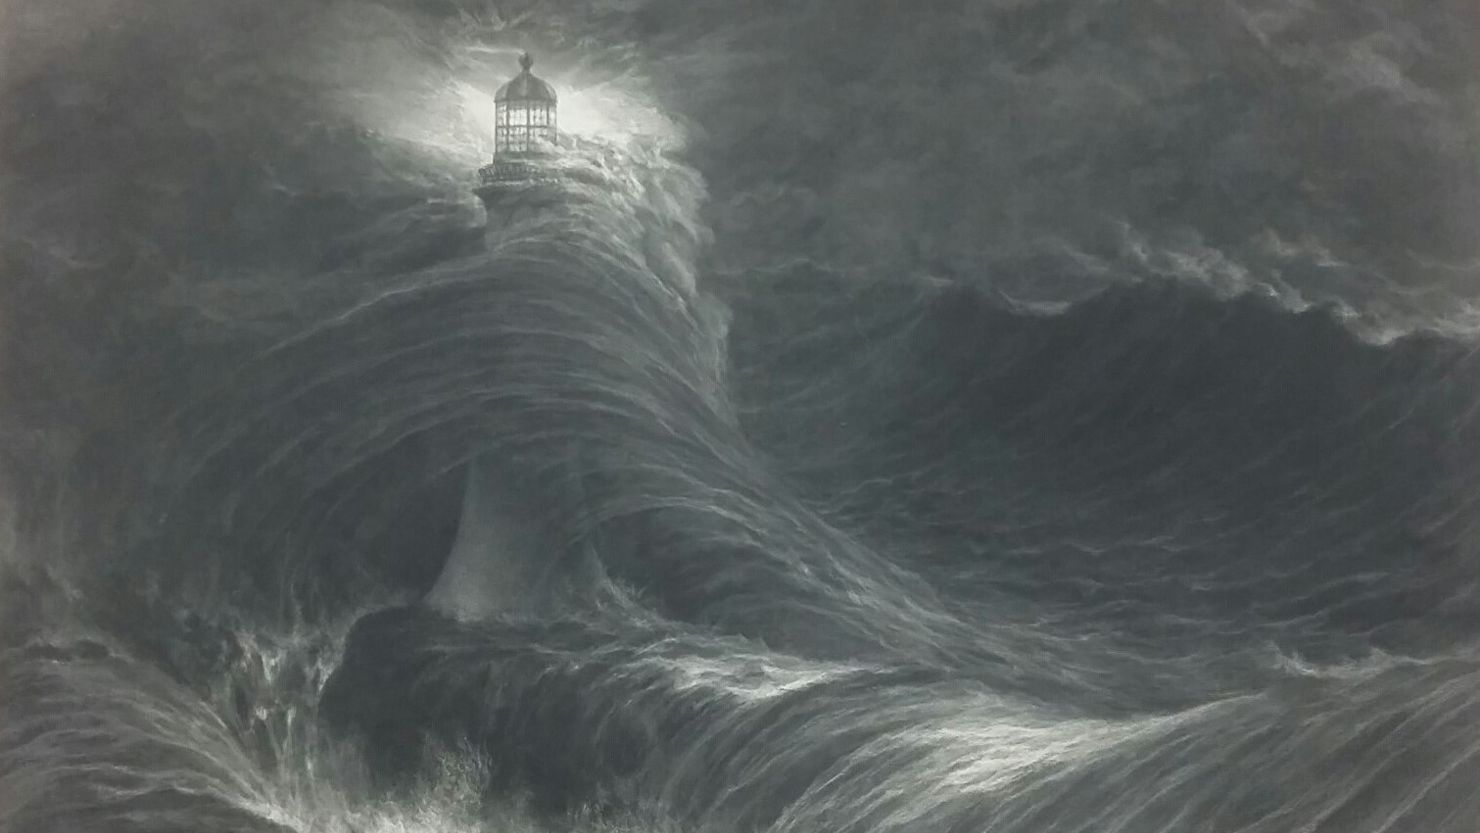 Print (detail) of William Daniell's 'Eddystone Lighthouse, During a Storm'